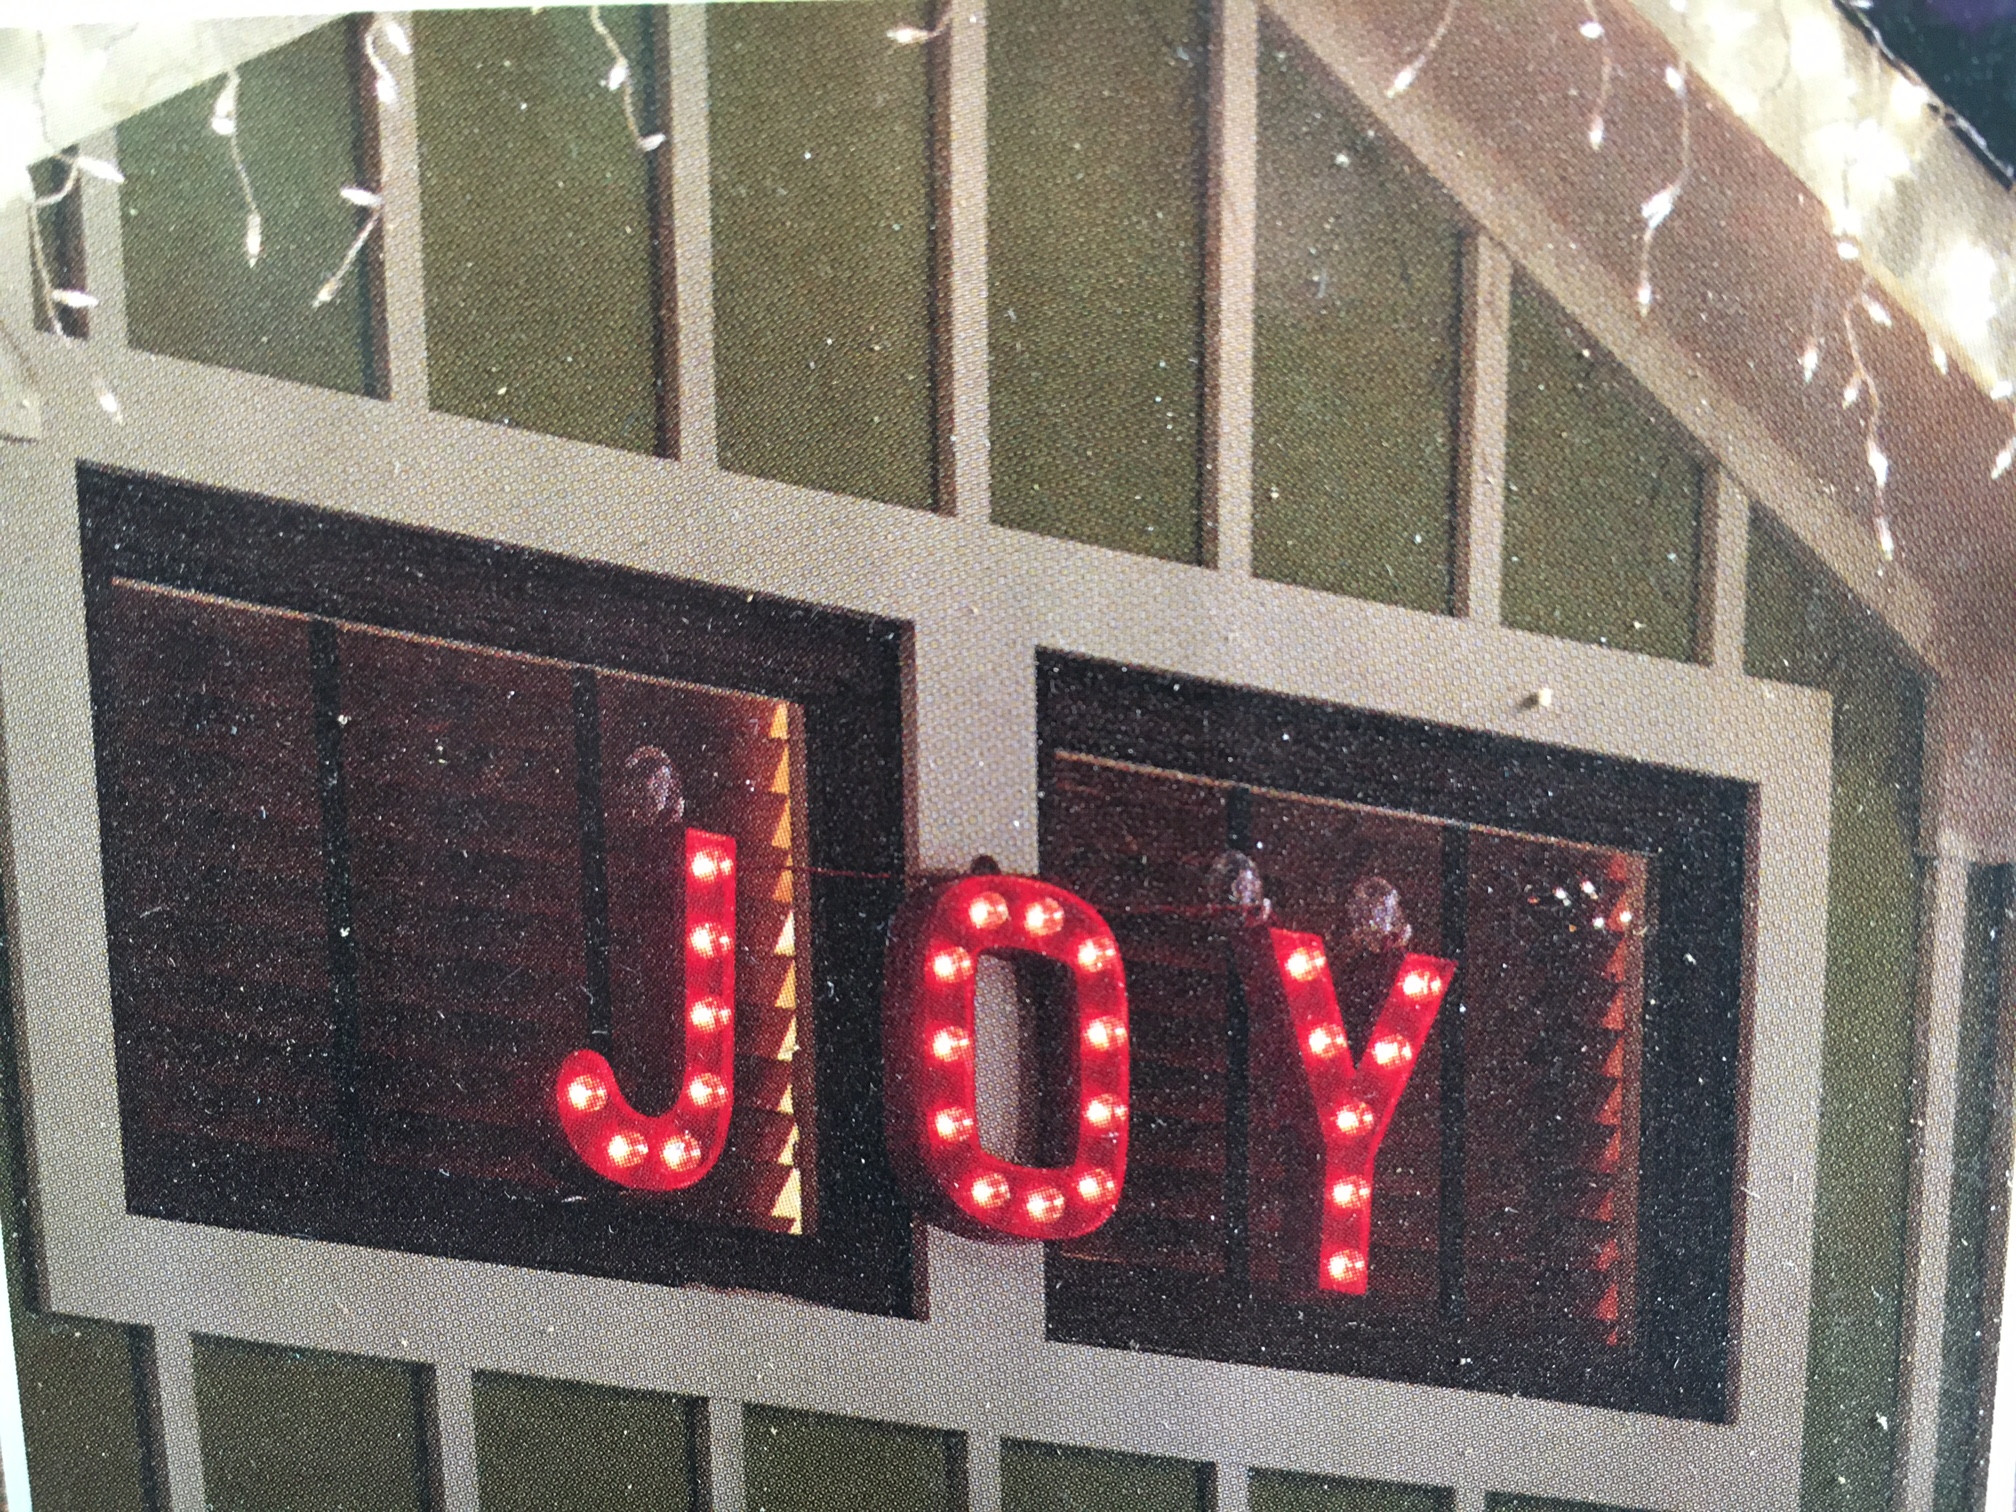 12 hanging lighted joy sign christmas decoration - Hanging Lighted Christmas Decorations